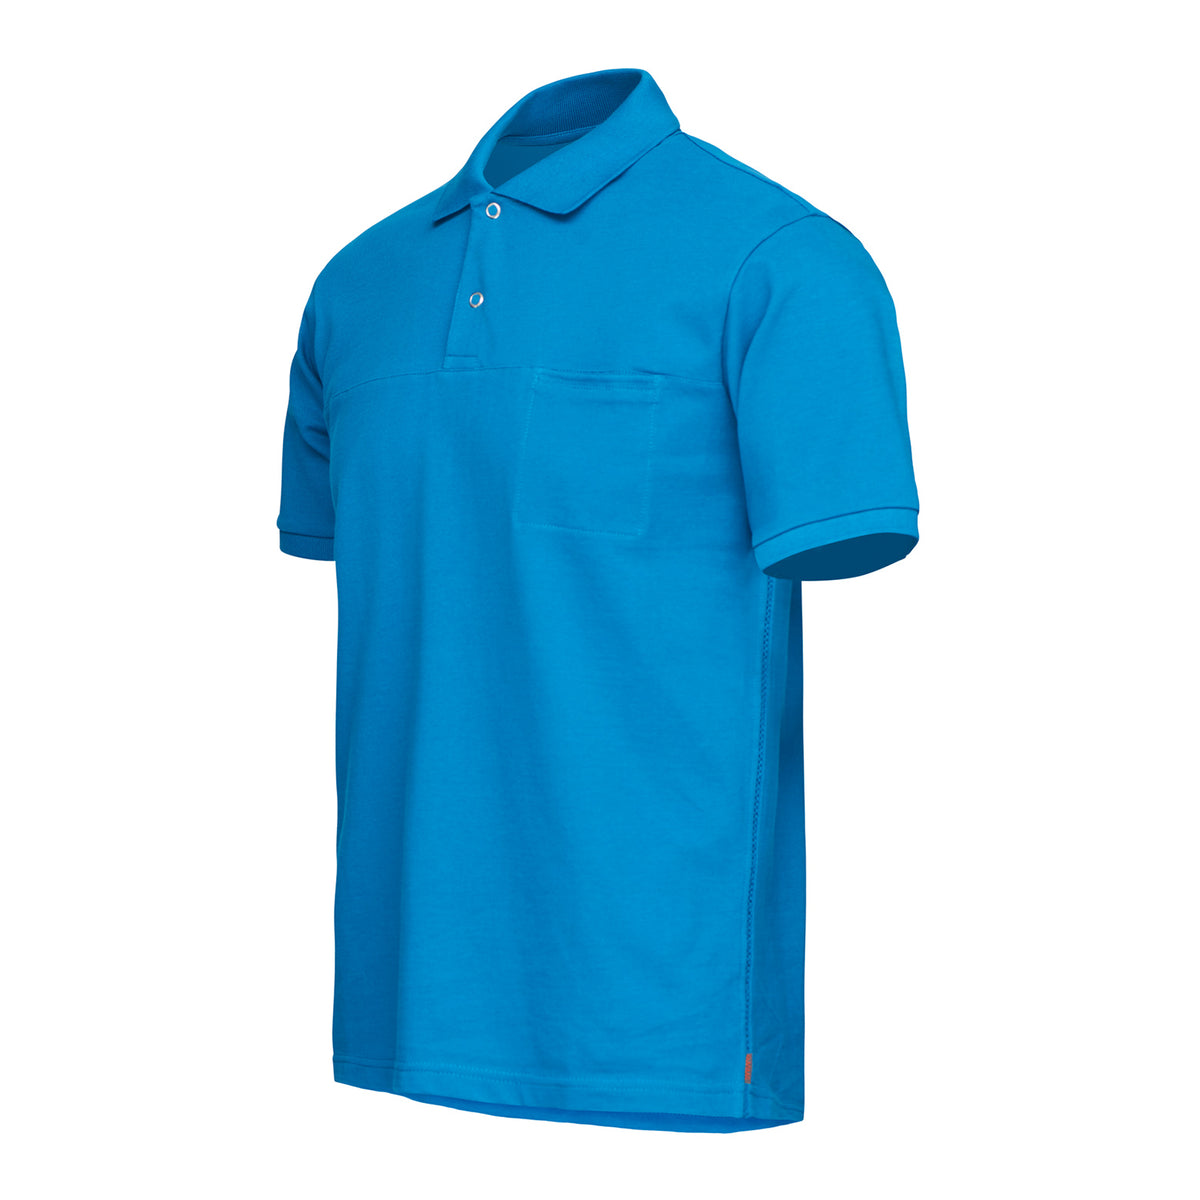 Breeze Polo Shirt - background::white,variant::Seaport Blue